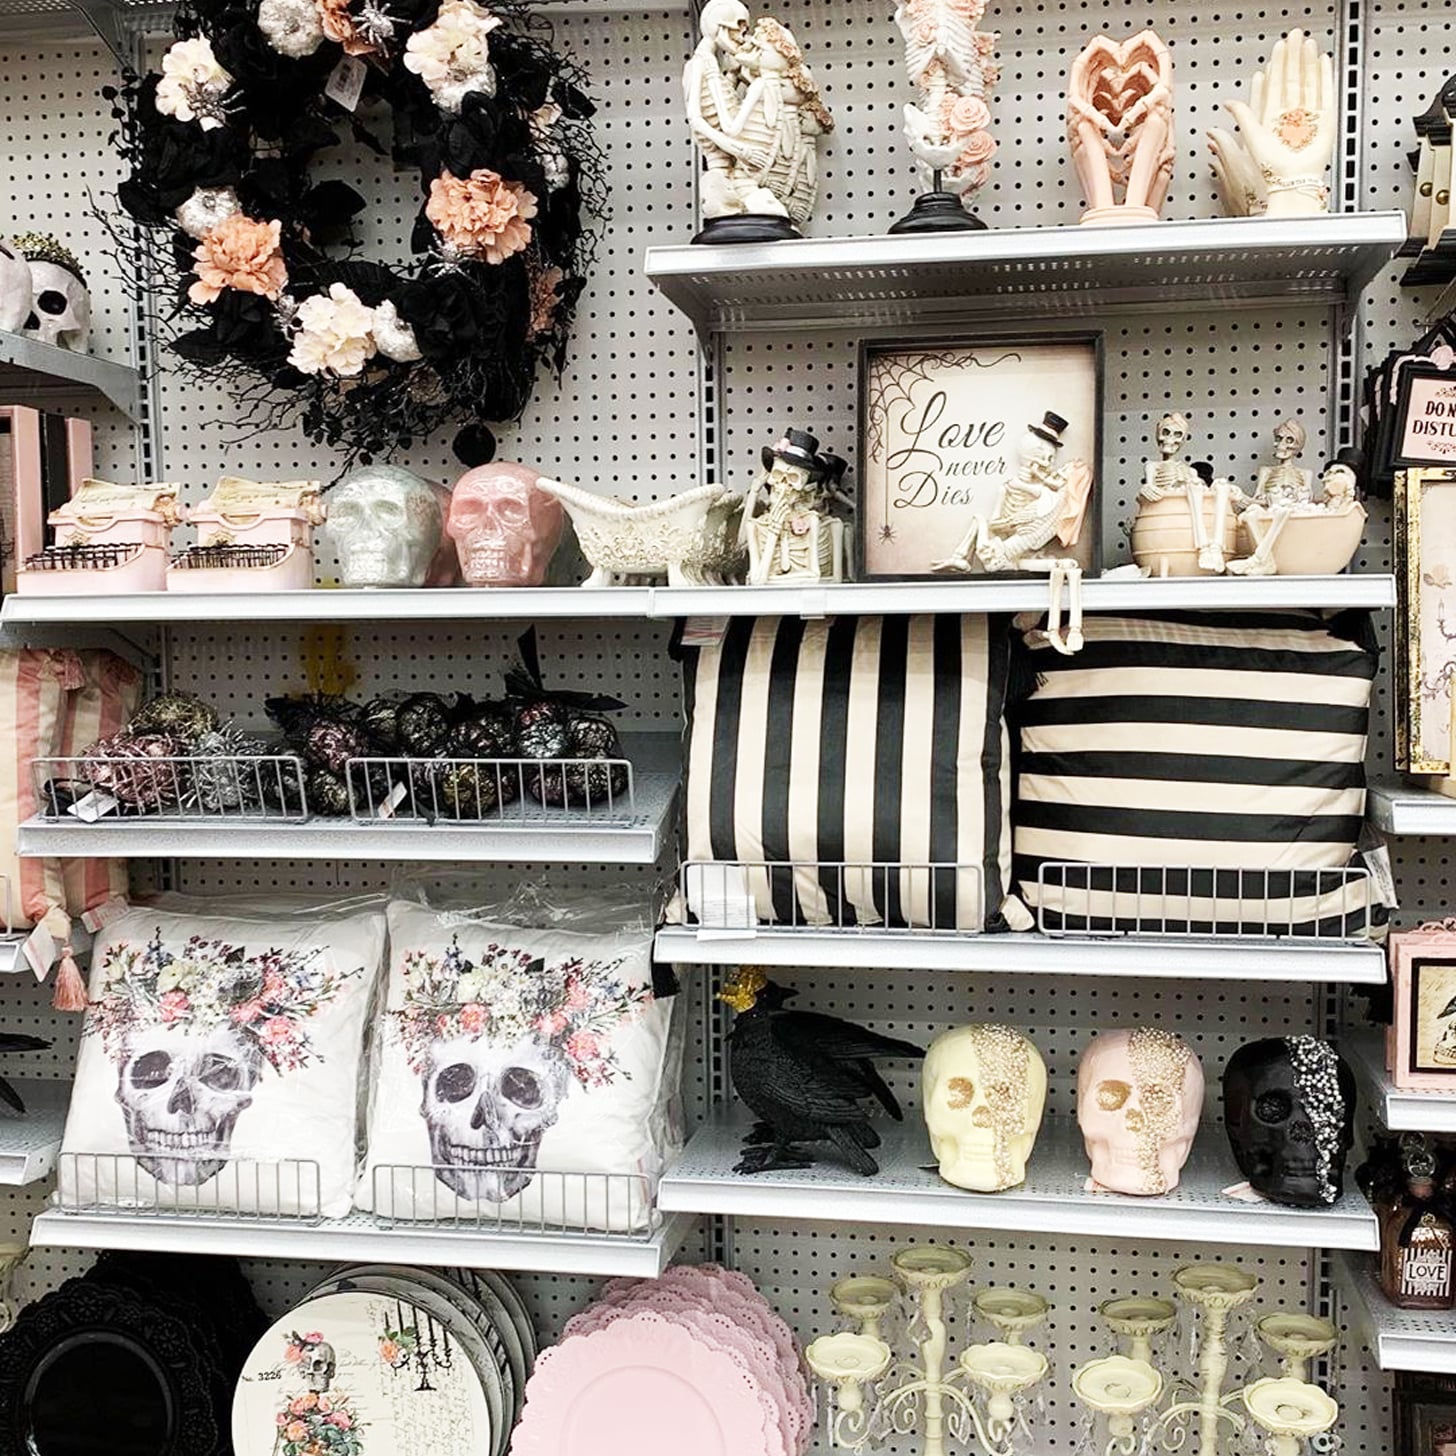 Vs Pink Halloween Collection 2020 See Michaels Pastel Goth Halloween Decorations | POPSUGAR Home